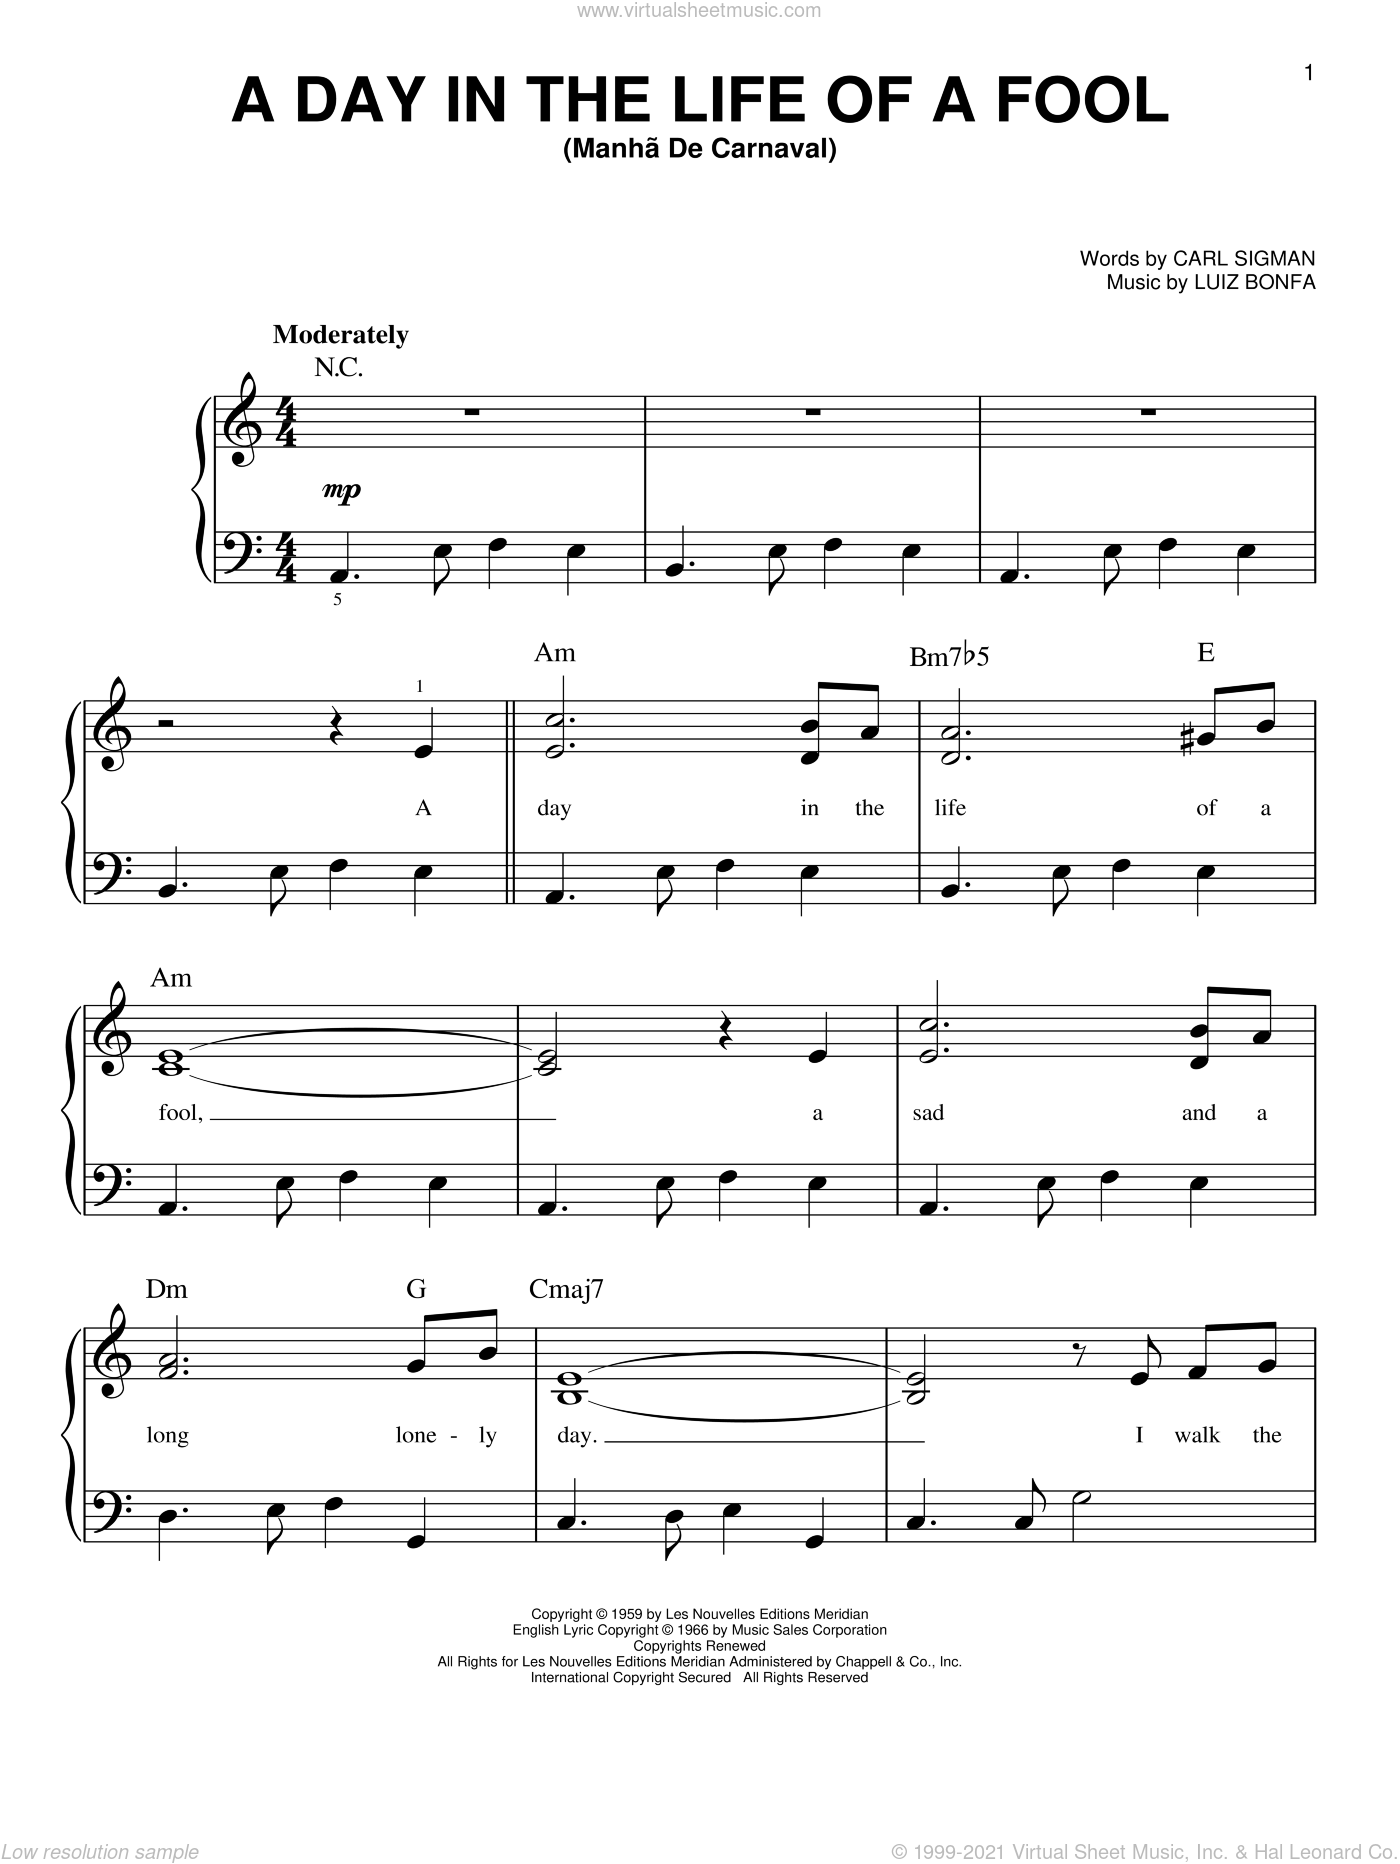 A Day In The Life Of A Fool (Manha De Carnaval) sheet music for piano solo by Carl Sigman and Luiz Bonfa, easy skill level